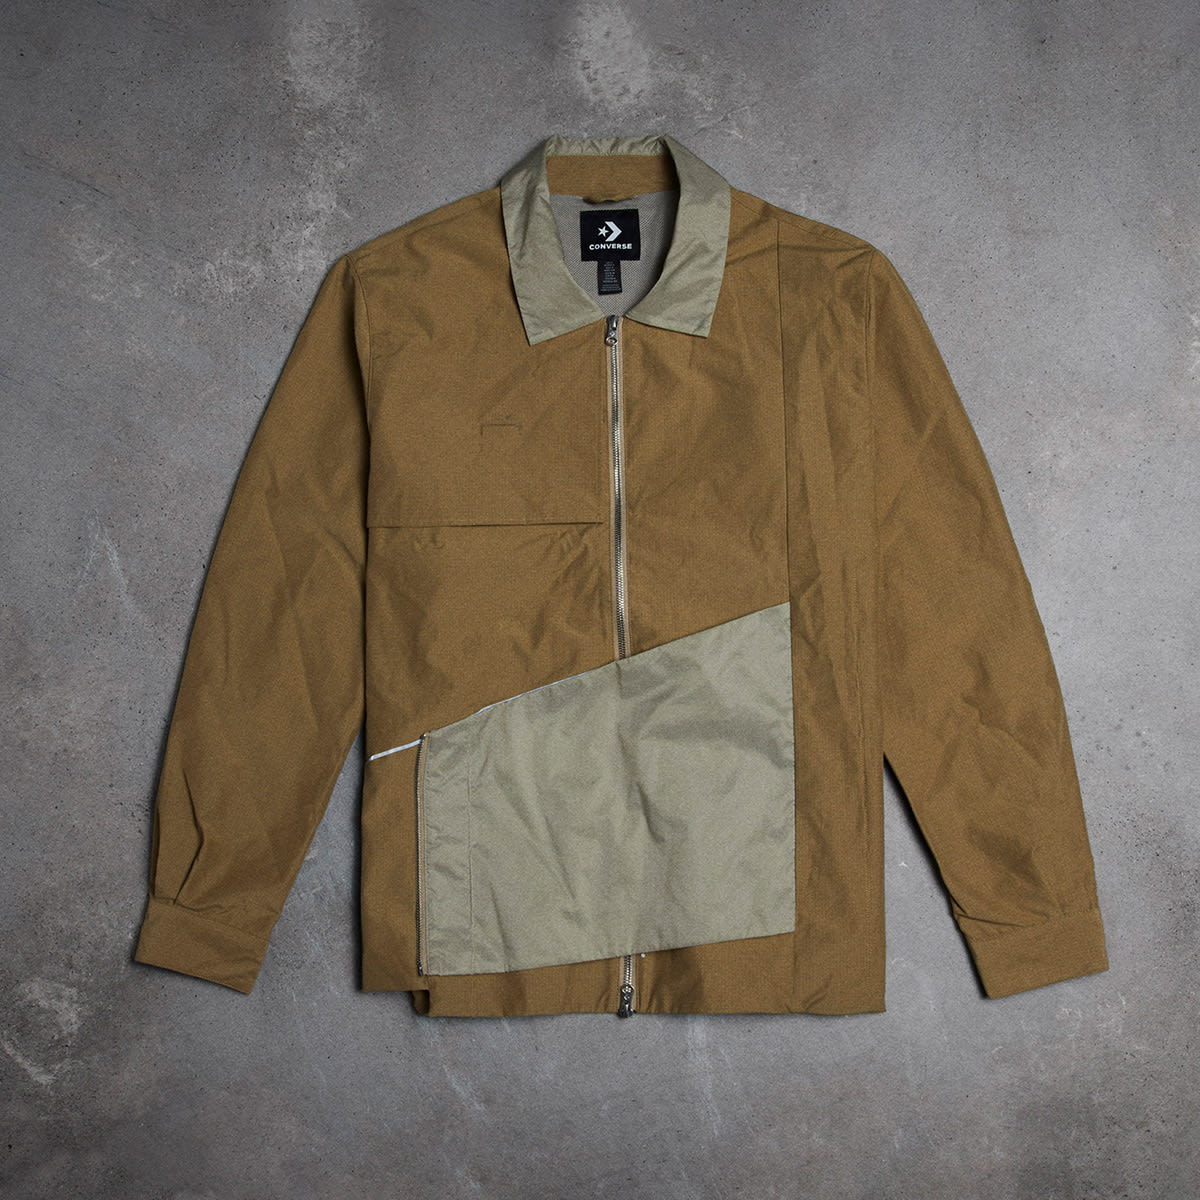 Converse x A-COLD-WALL* Track Top - 10019368-216